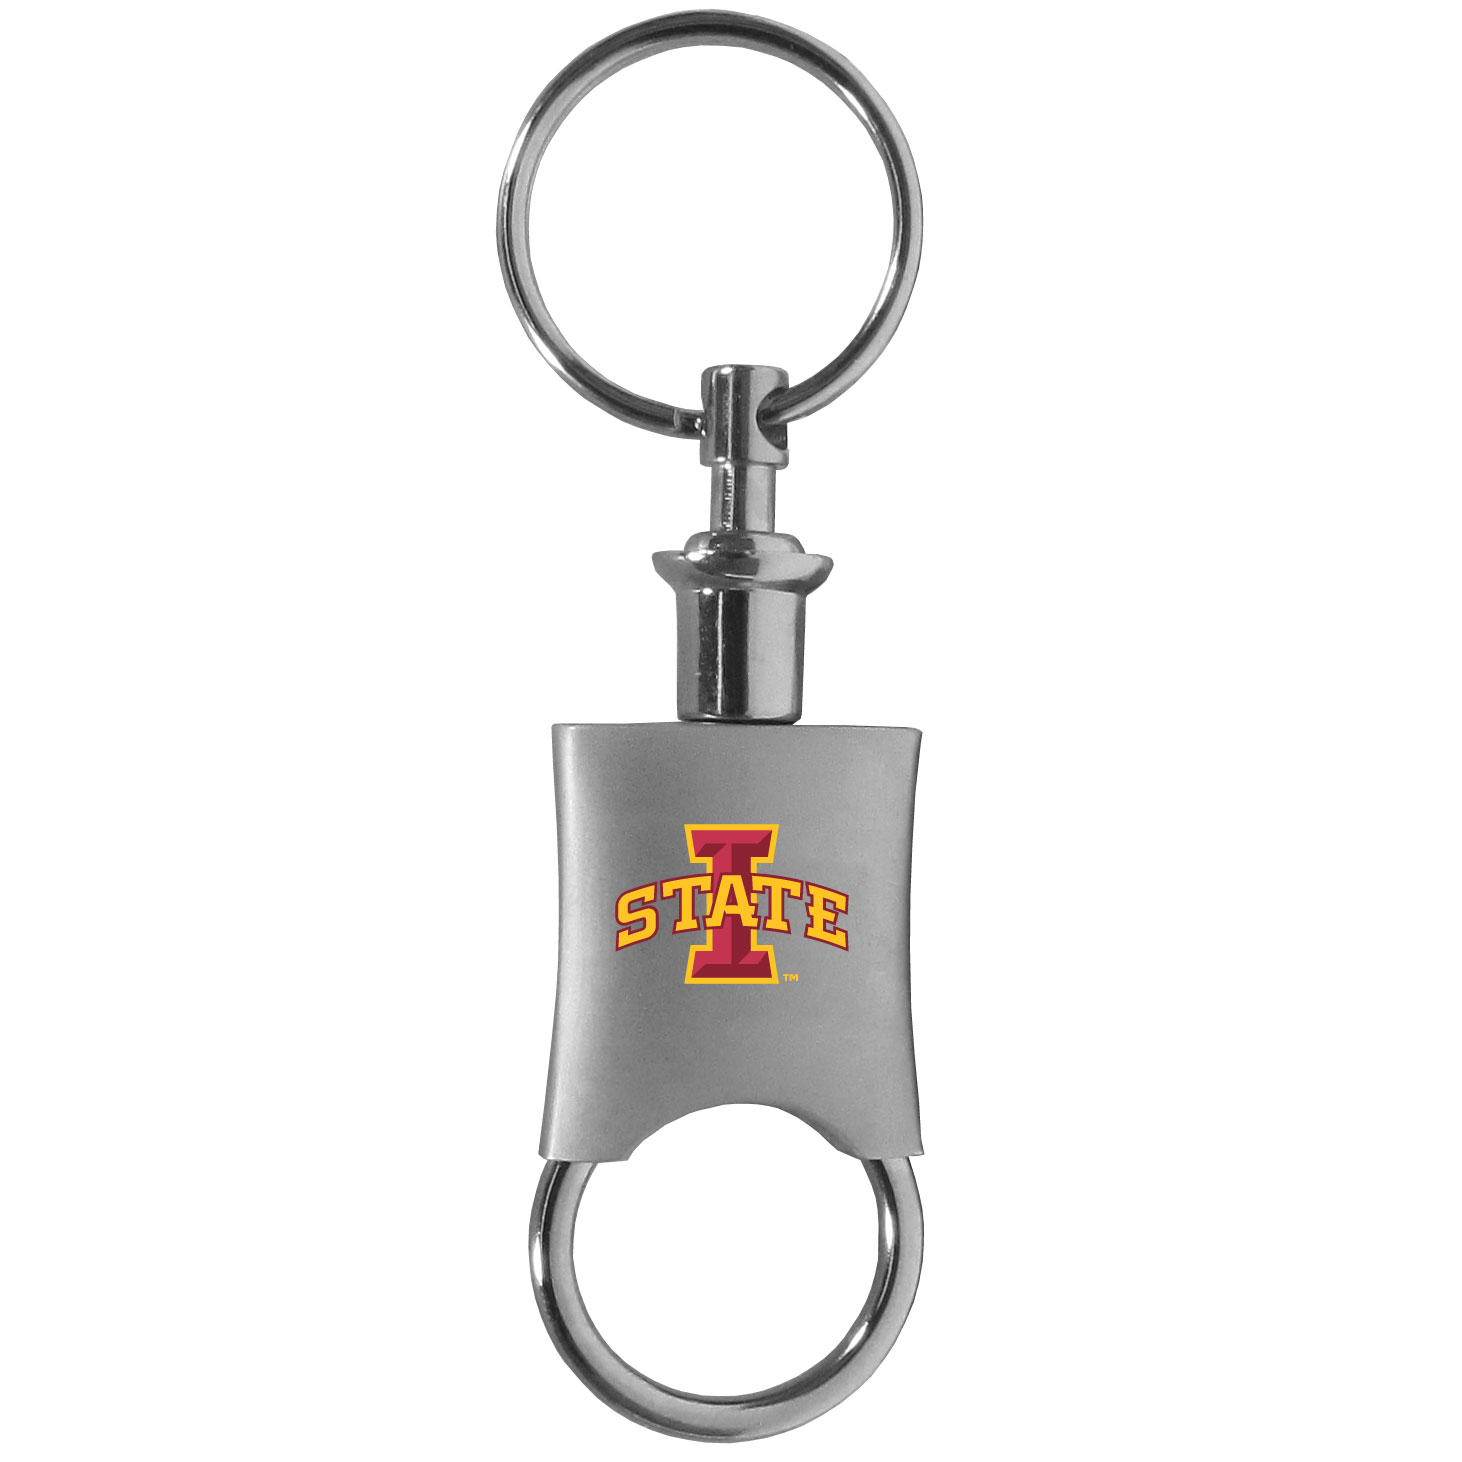 Iowa St. Cyclones Valet Key Chain - This high-quality key chain is both fashionable and functional. The key chain features to key rings and one of them detaches easily for valet use so you do not have to risk giving out all of your keys. The beautiful brushed metal finish features the Iowa St. Cyclones logo expertly printed on front.